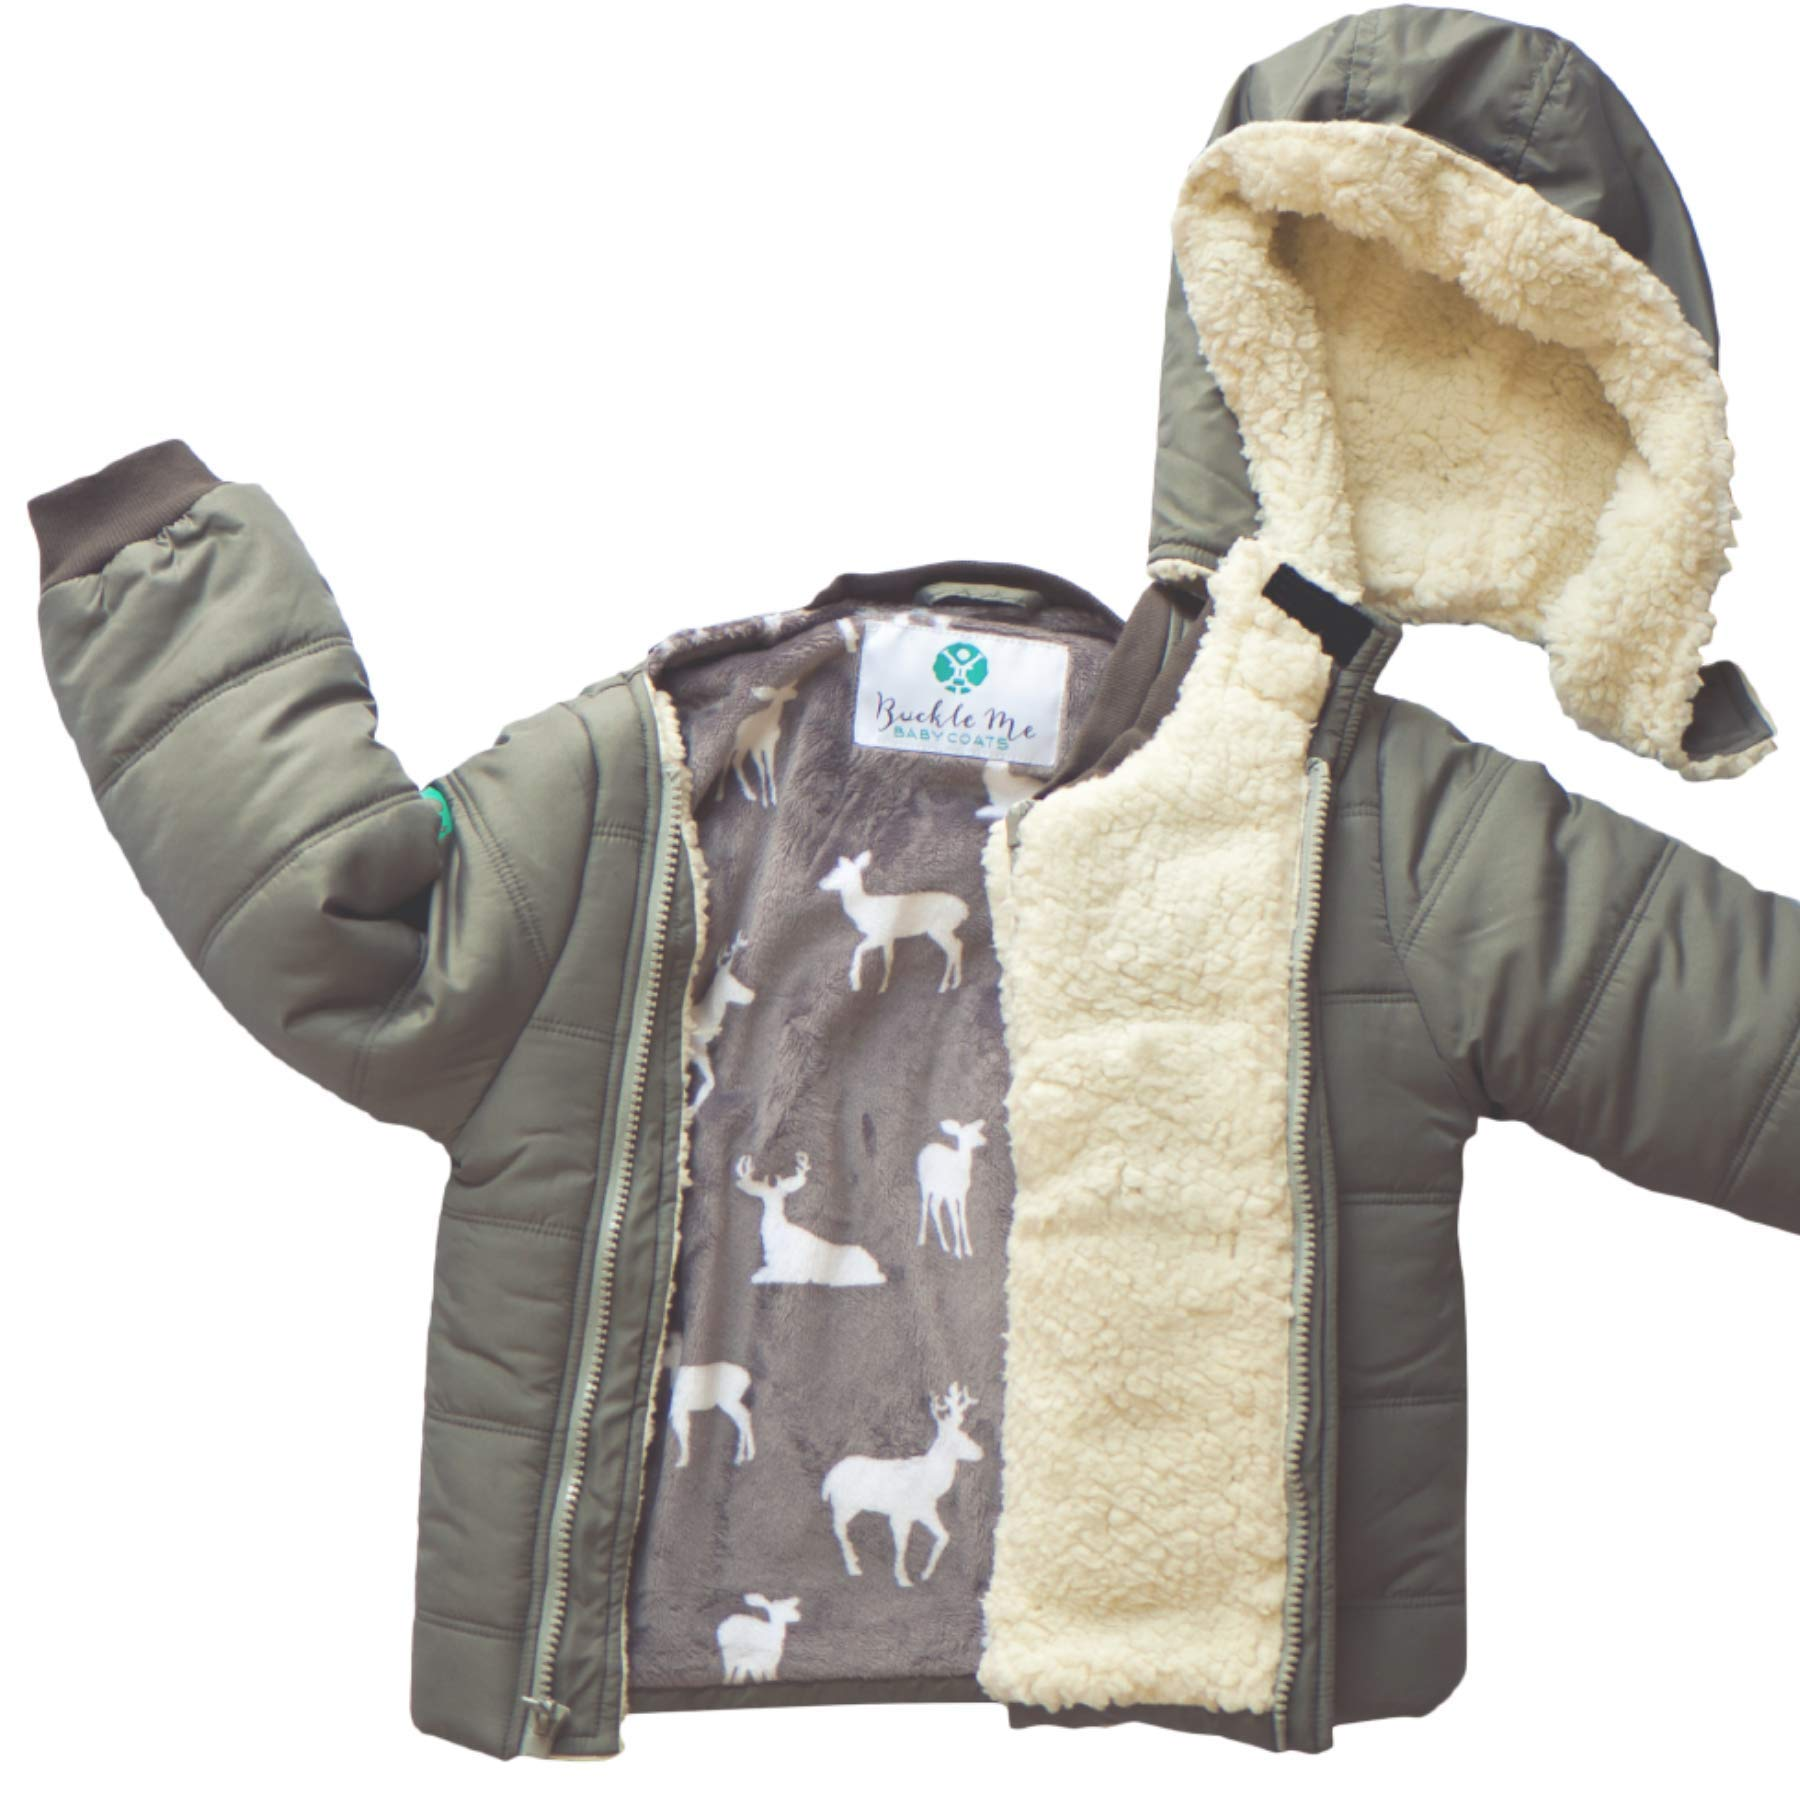 Buckle Me Baby Coats | Car Seat Winter Jacket Toddler Boy Girl Grey (2T) by Buckle Me Baby Coats